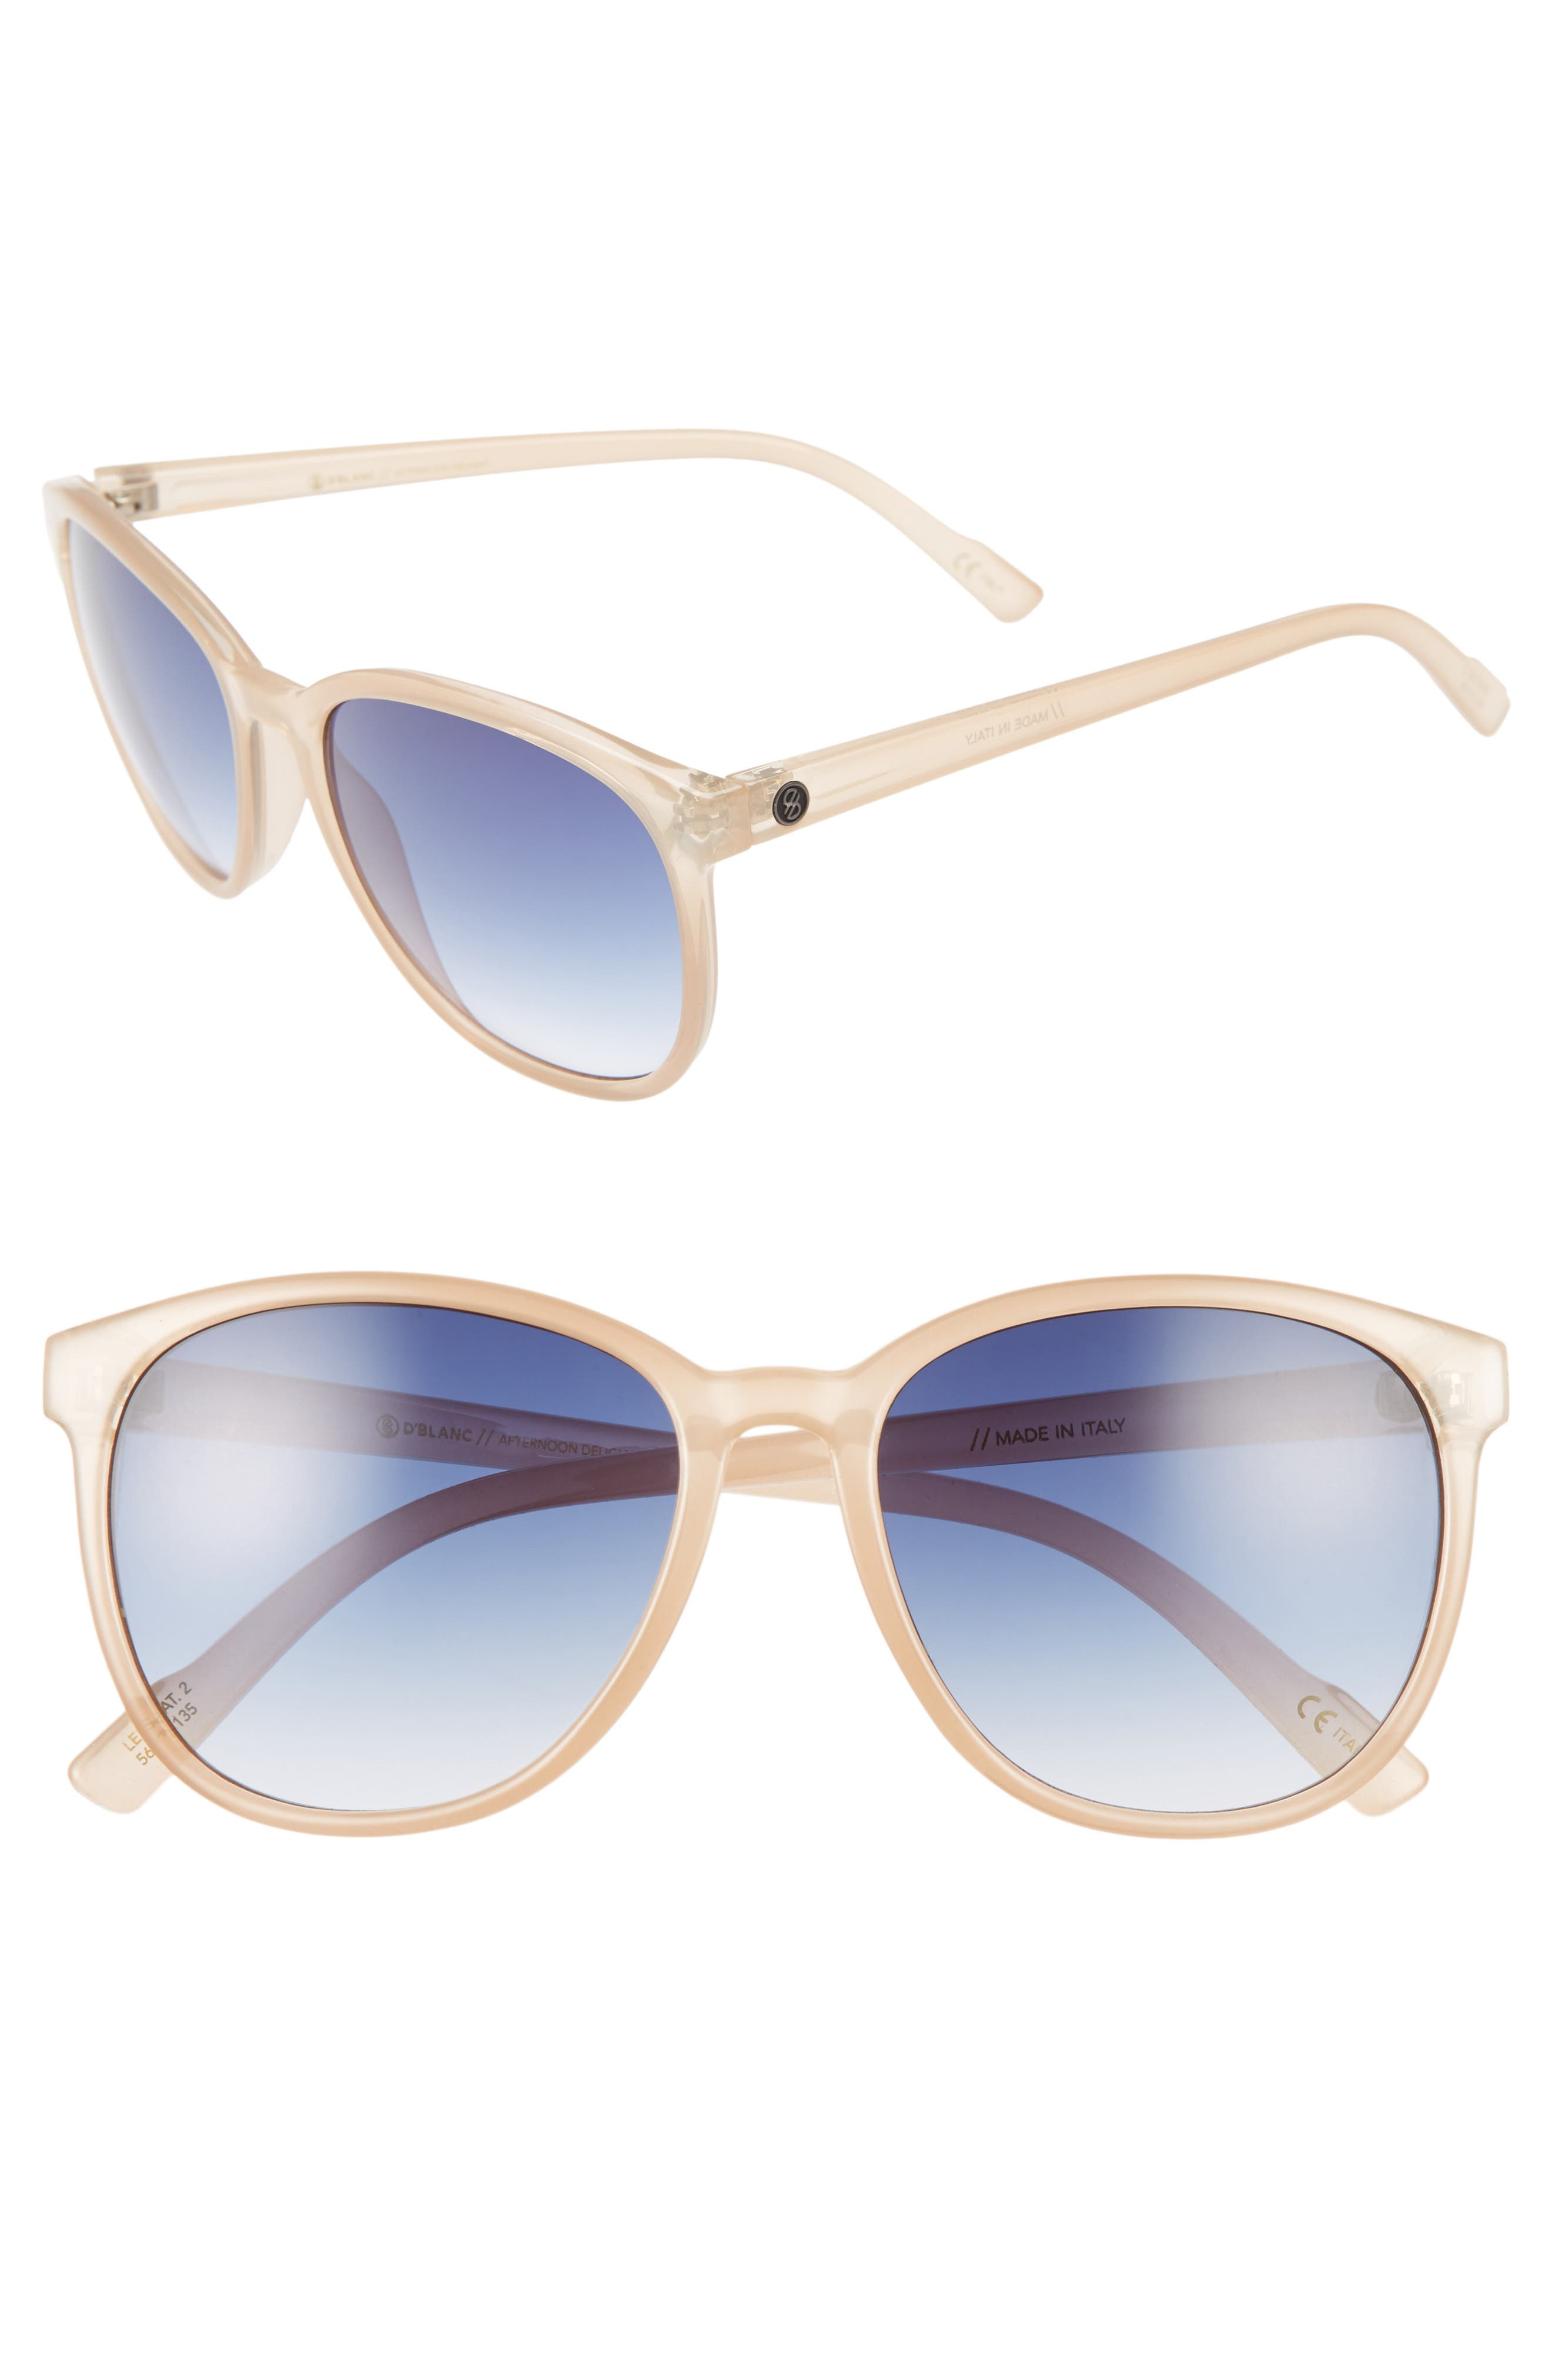 Main Image - D'BLANC Afternoon Delight 56mm Gradient Lens Sunglasses